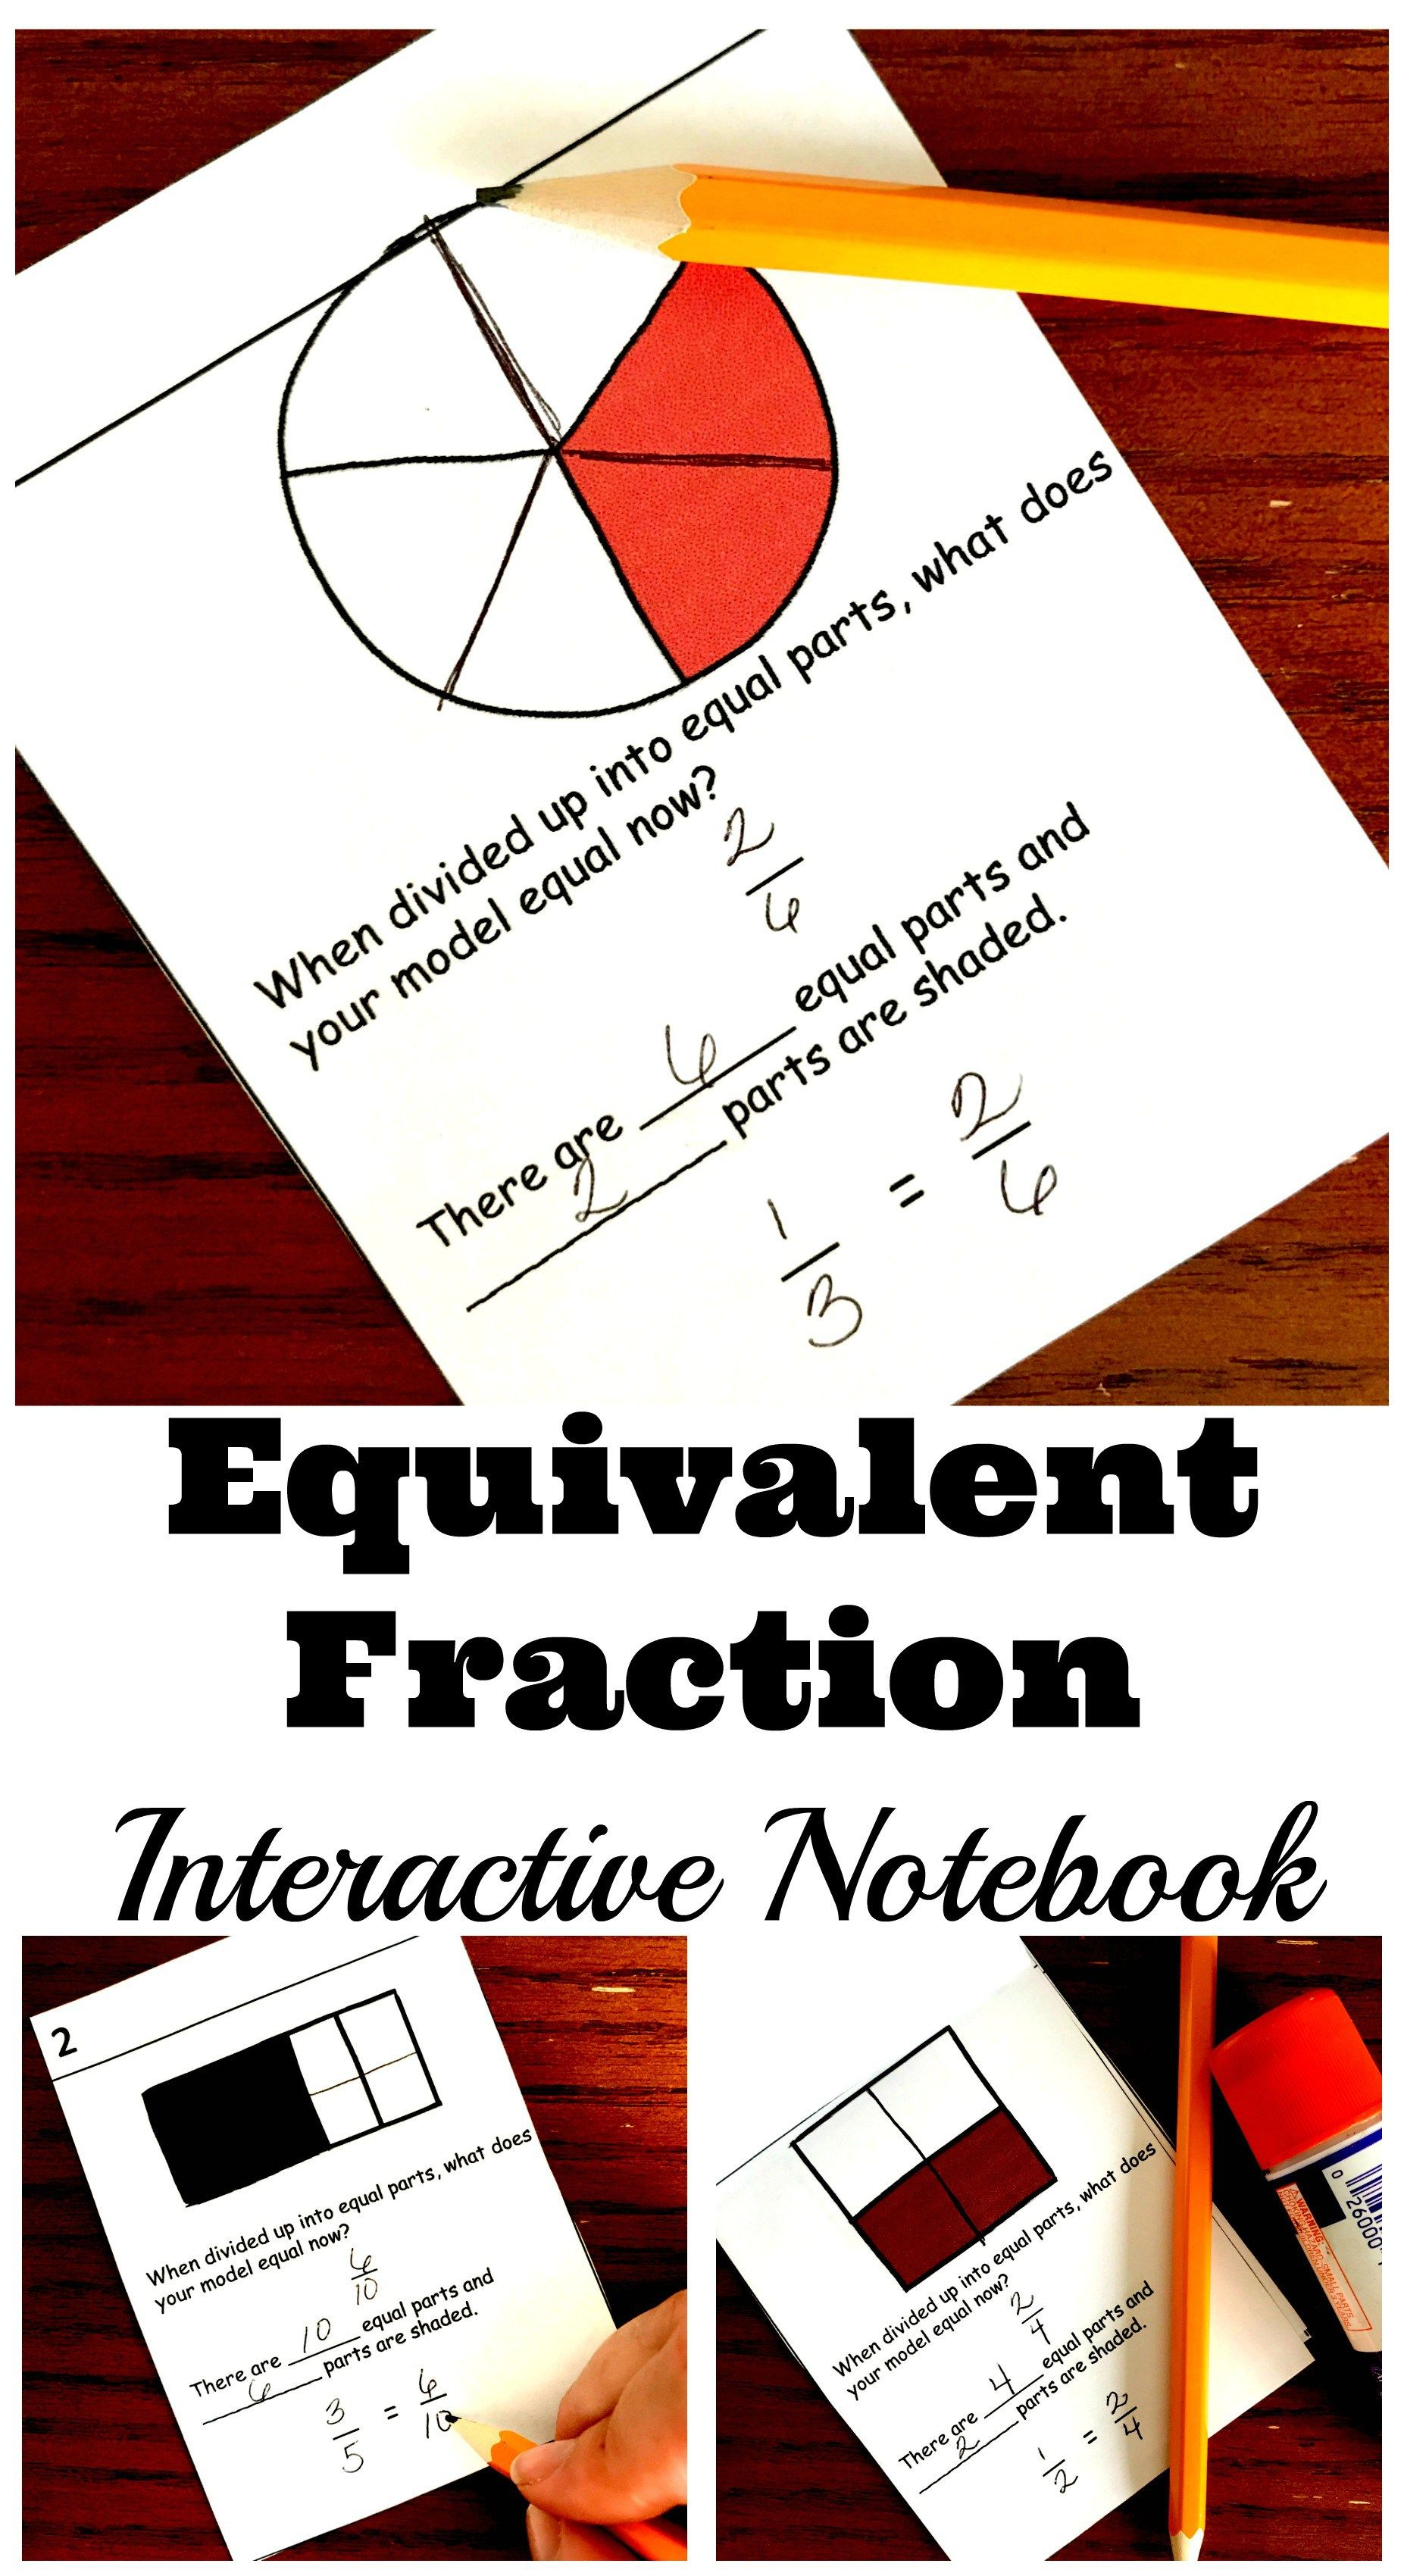 How to Teach Equivalent Fractions with an Interactive Notebook